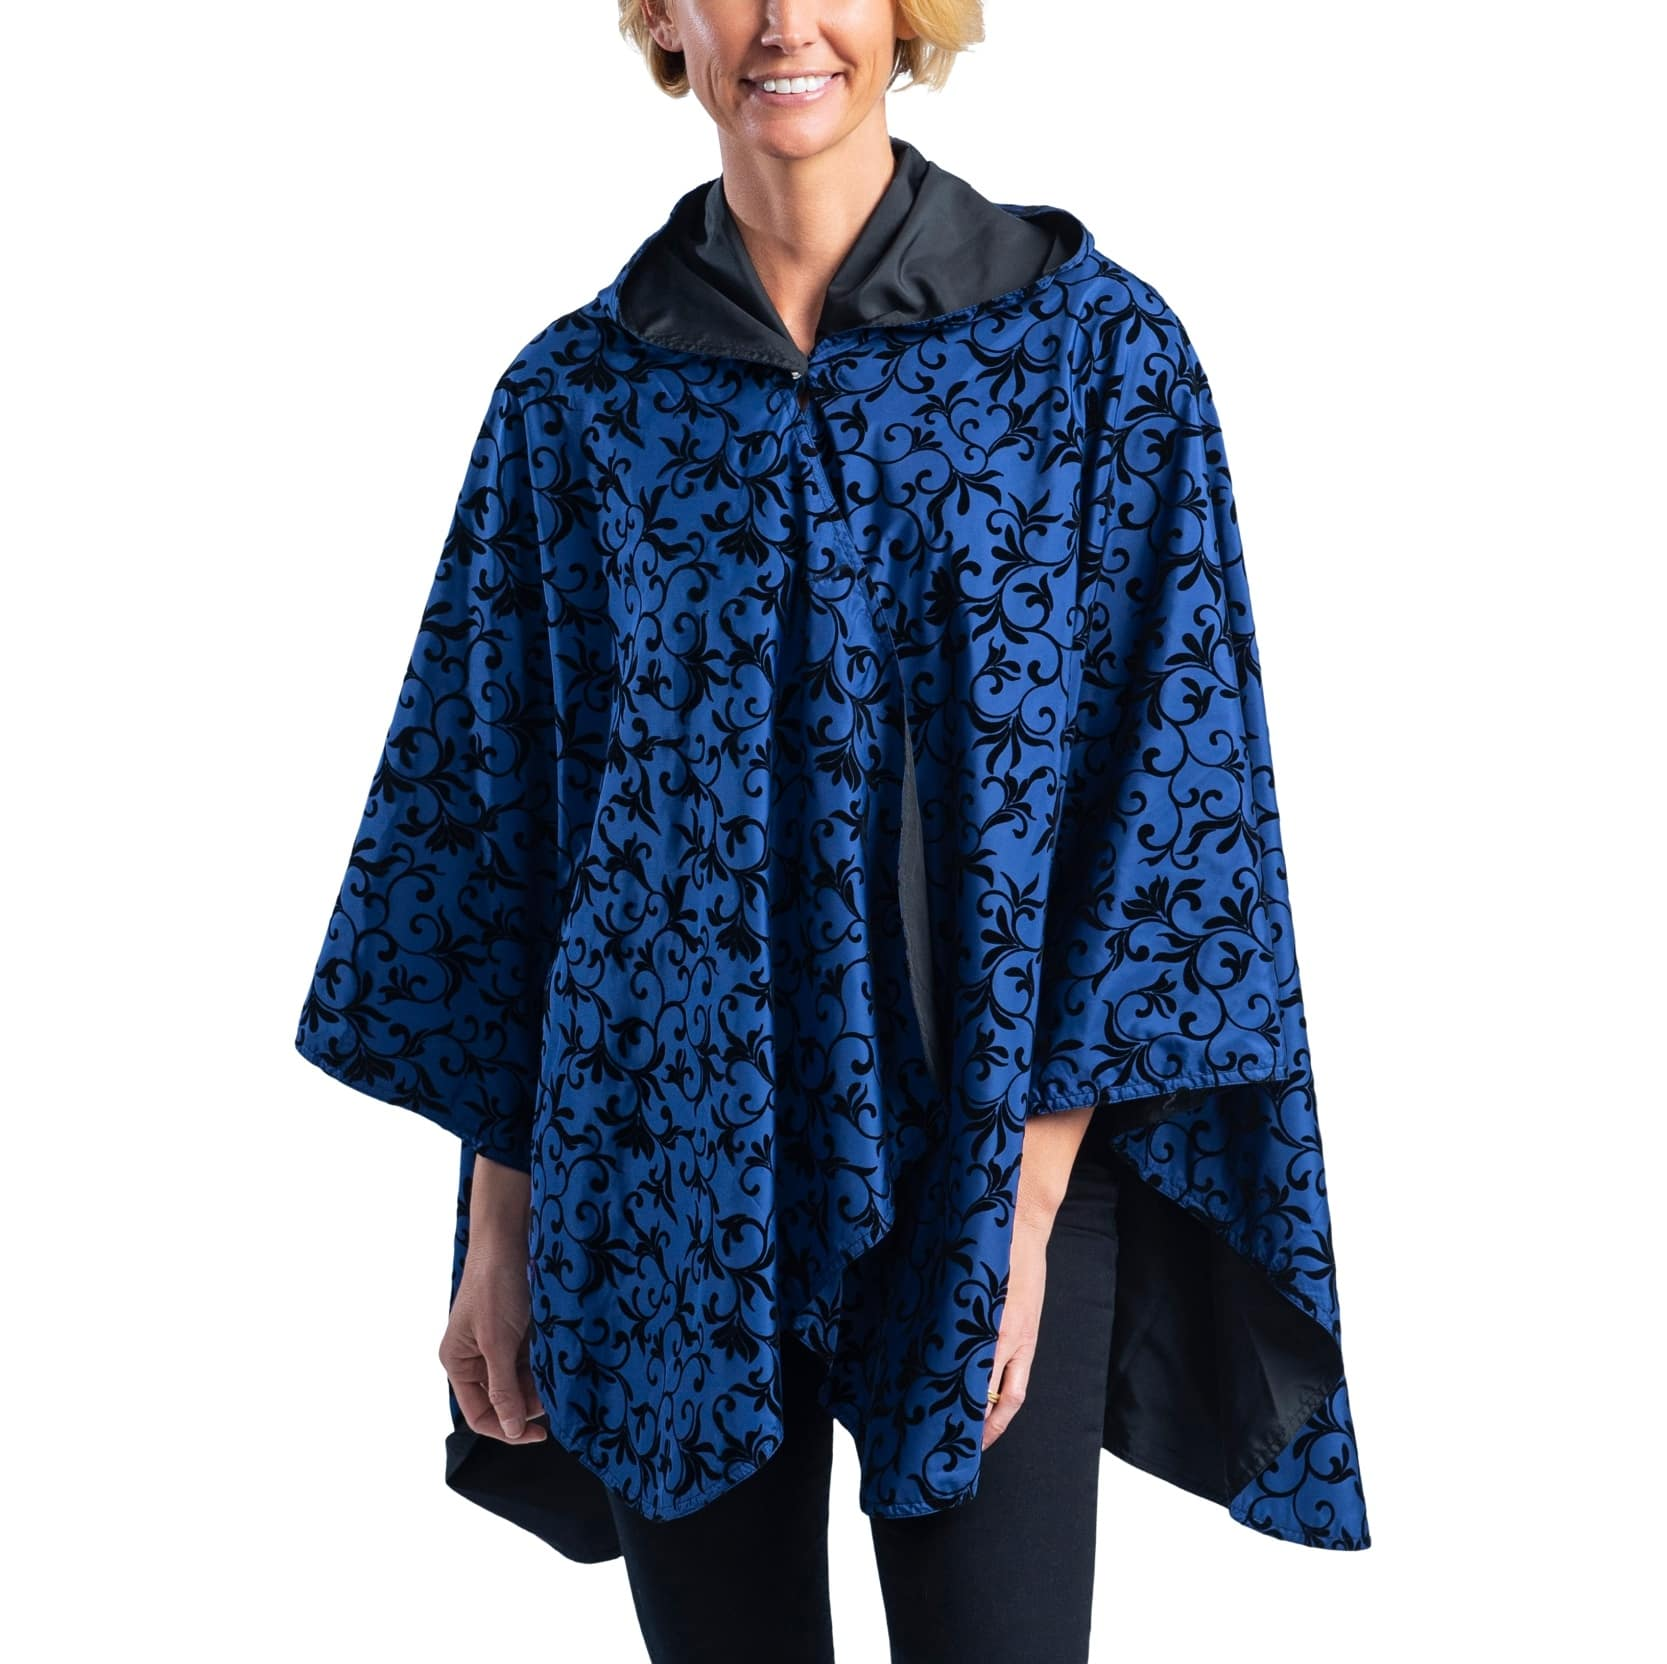 Woman wearing a Midnight Blue with Velvet Swirls RainCaper travel cape